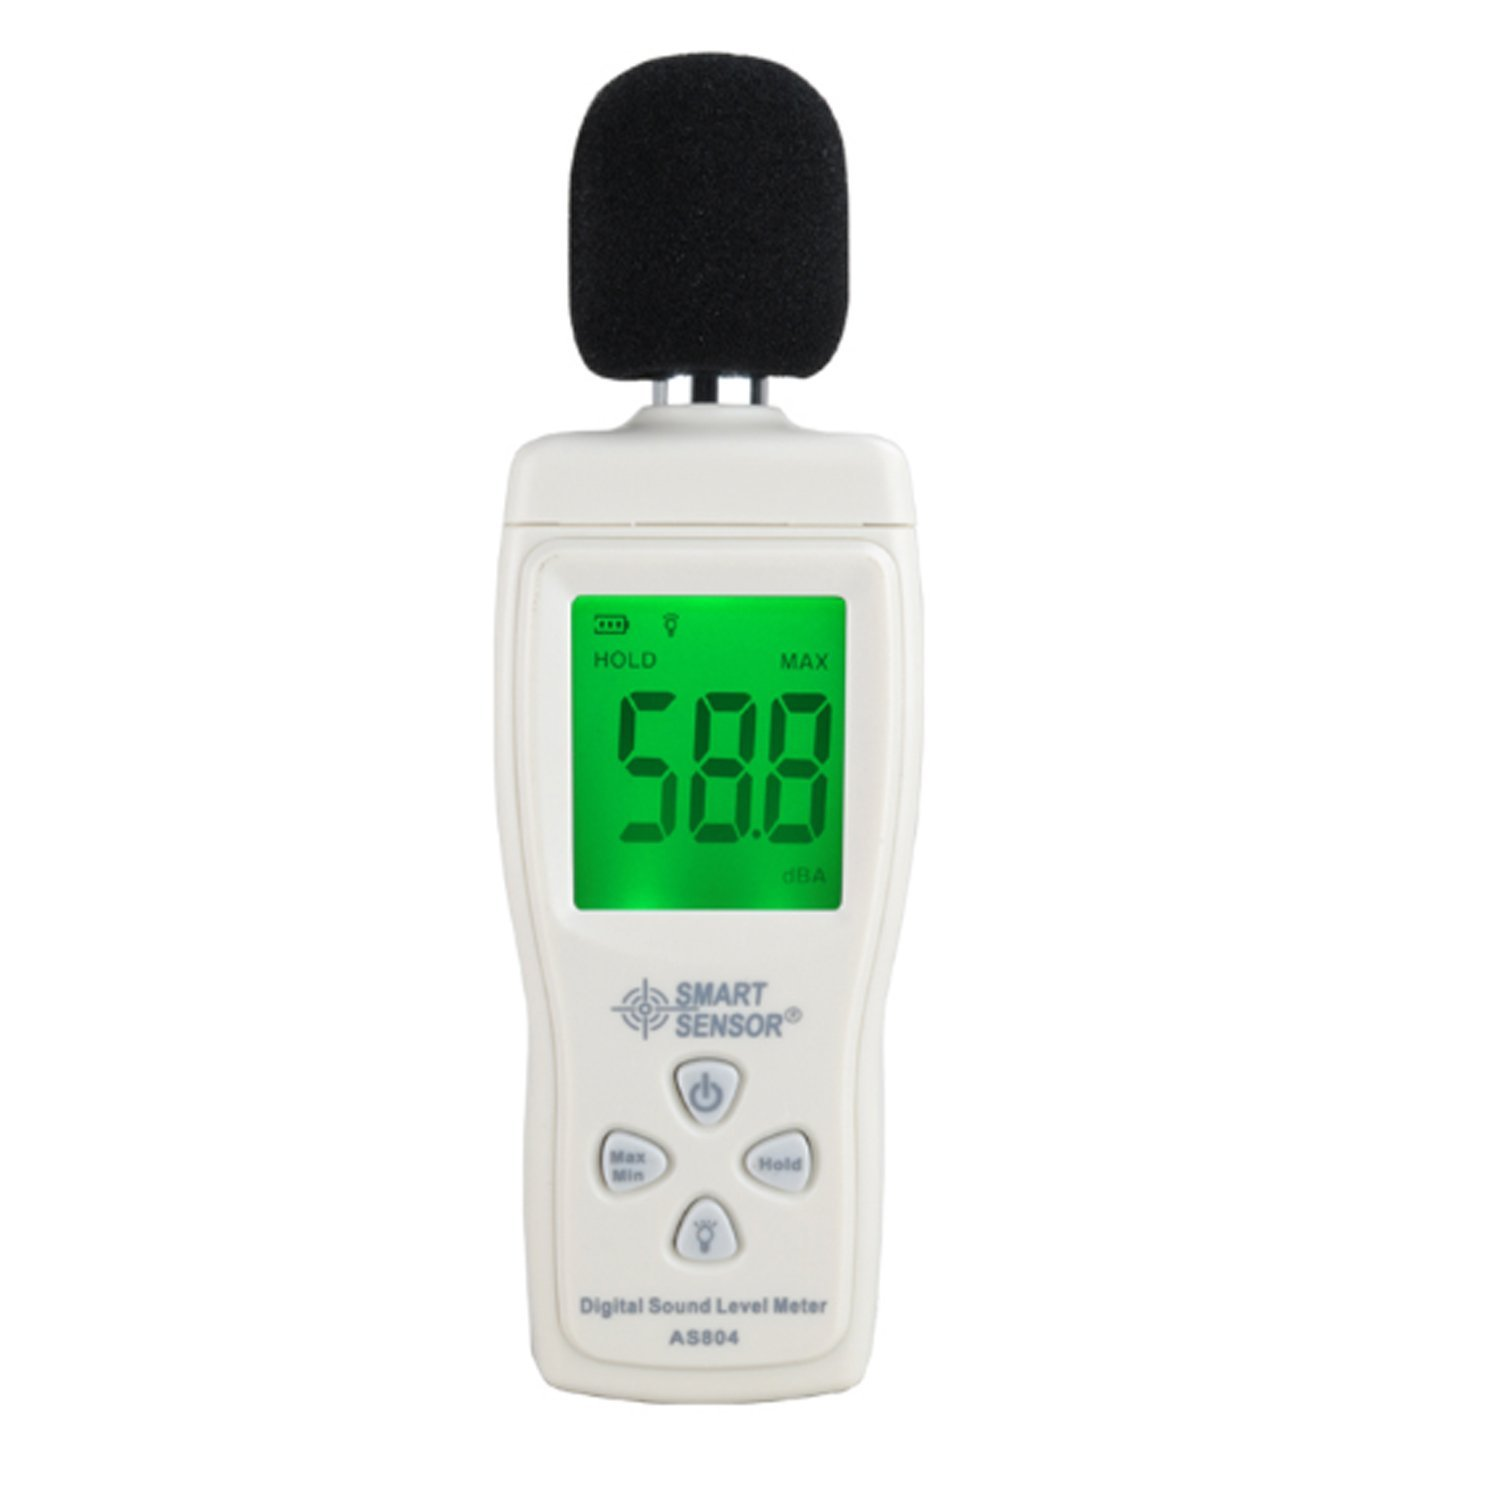 Digital sound level meter Measure 30-130dB Noise dB Decibel meter Monitoring Testers Metro Diagnostic-tool Smart Sensor AS804